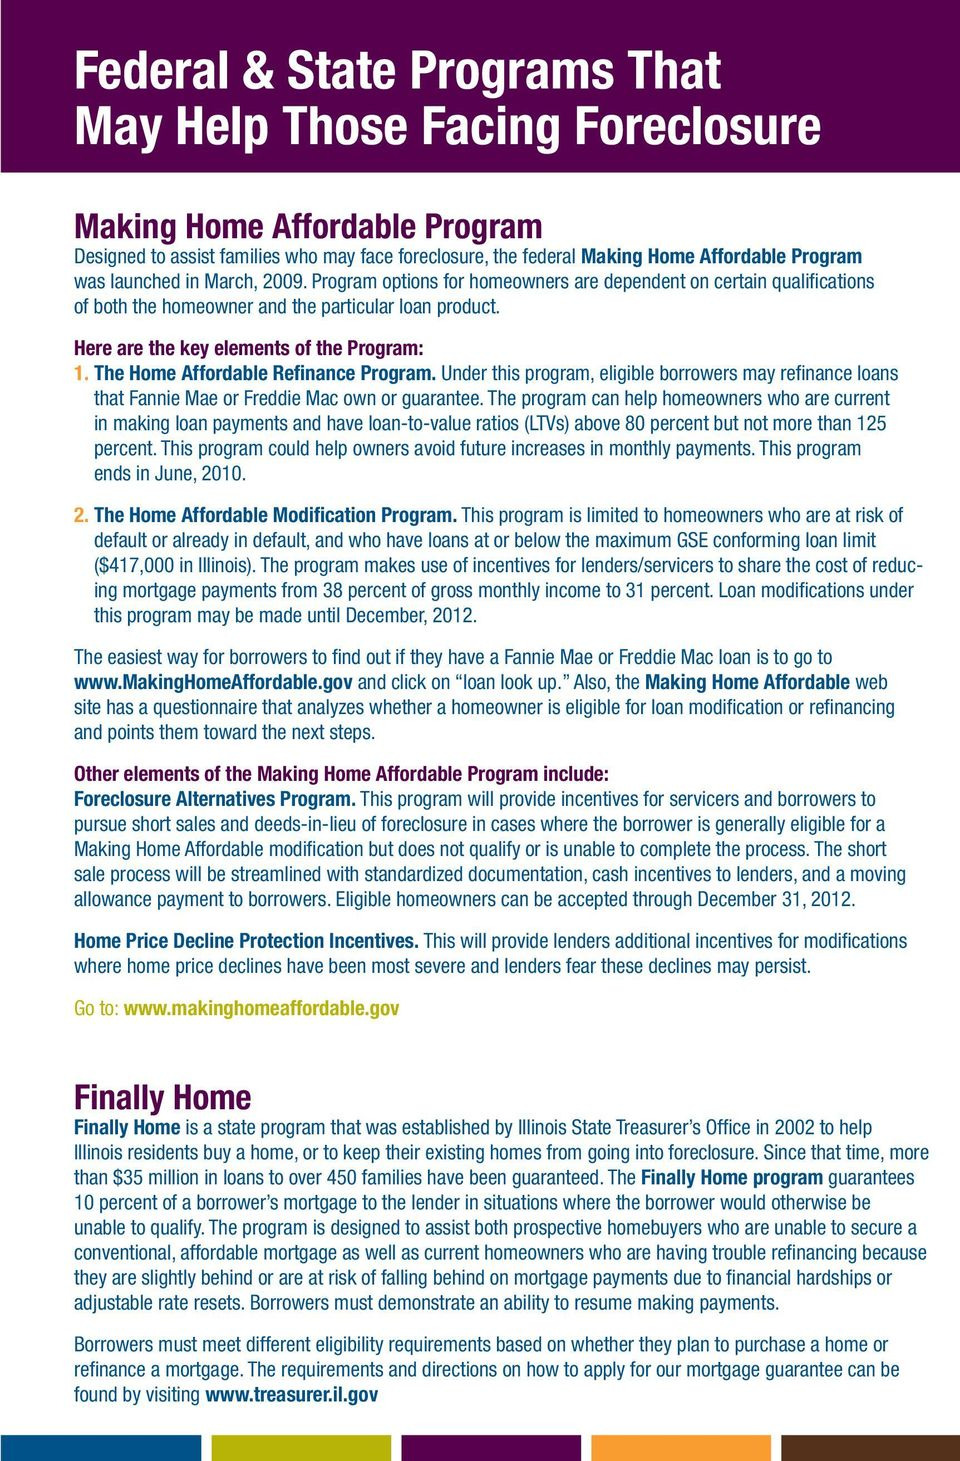 Obama Housing Plan Qualifications Beautiful Realtors Guide to foreclosure Resources Pdf Free Download